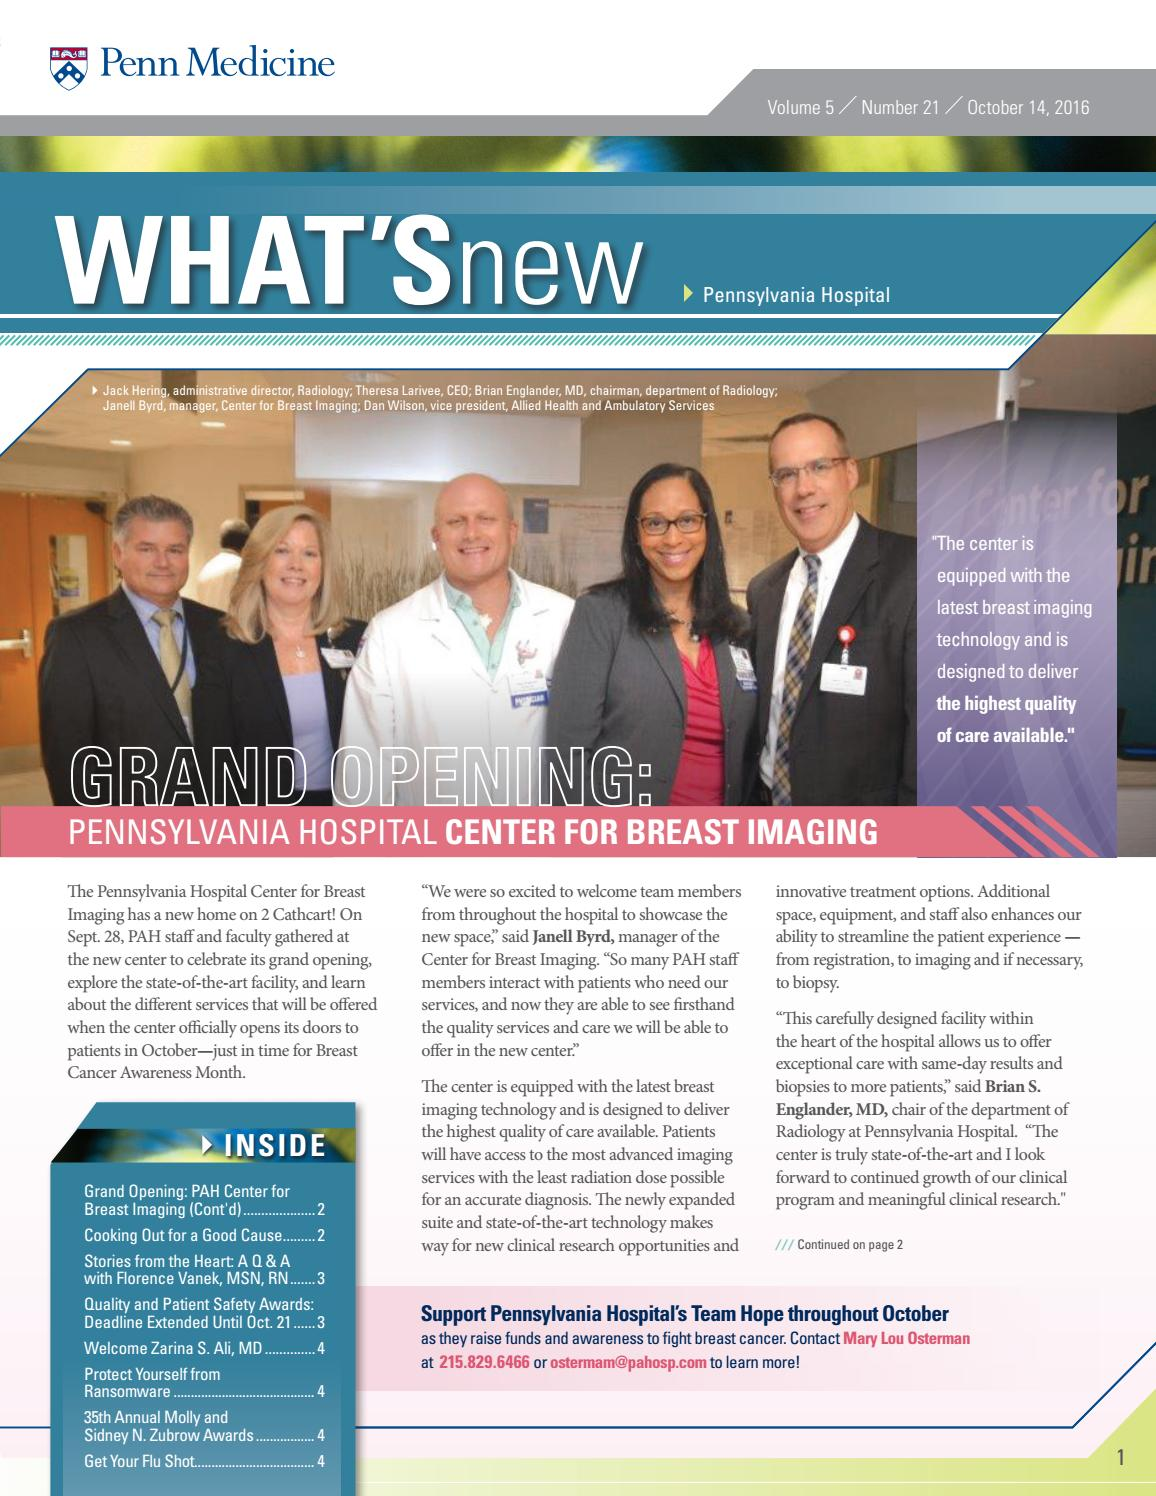 Digital Edition of What's New - 10/14/2016